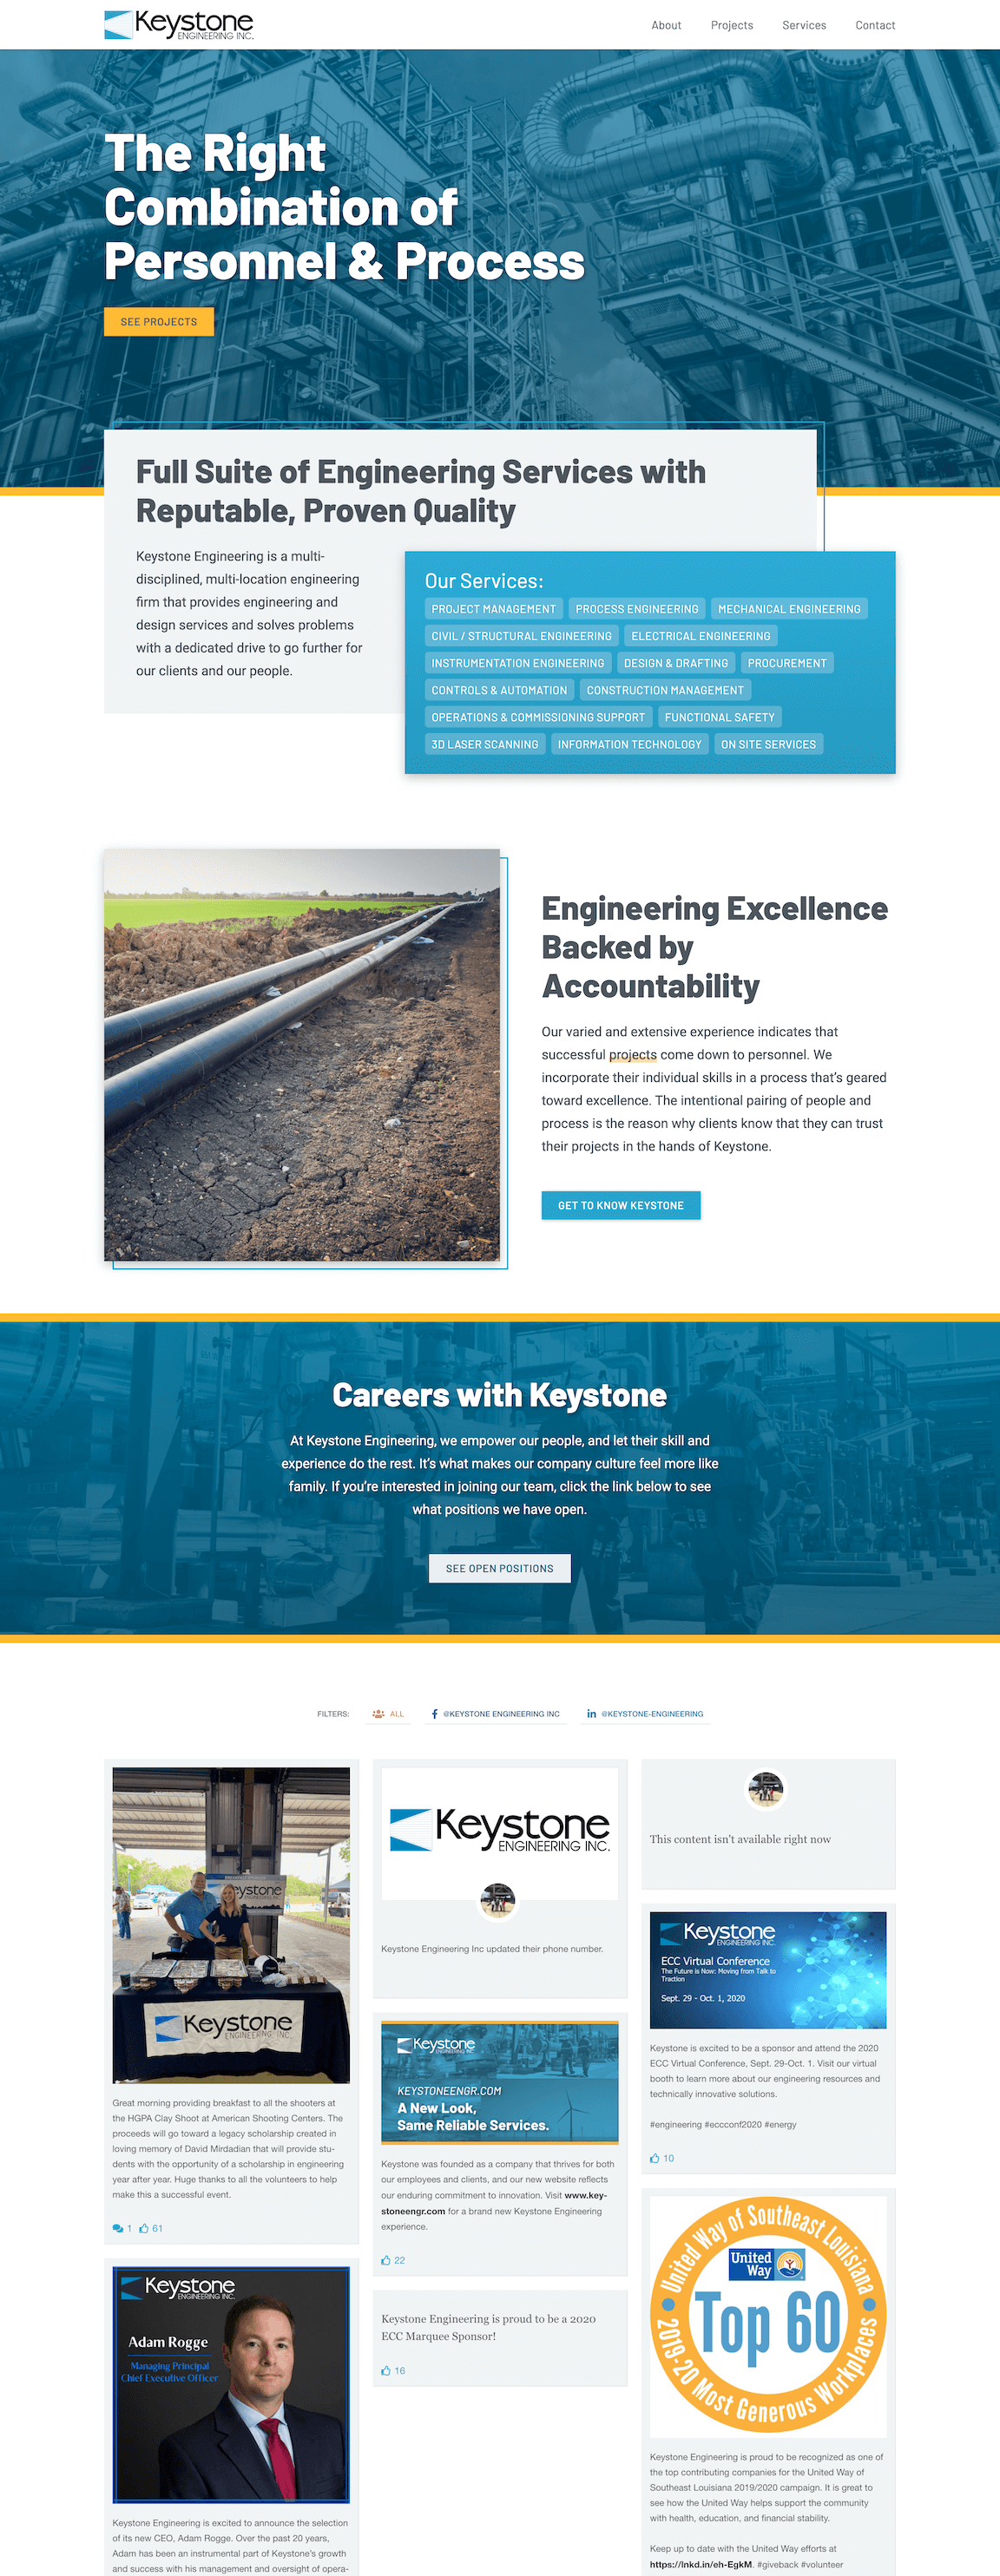 Keystone Engineering website Homepage designed and developed by Chase Whitney